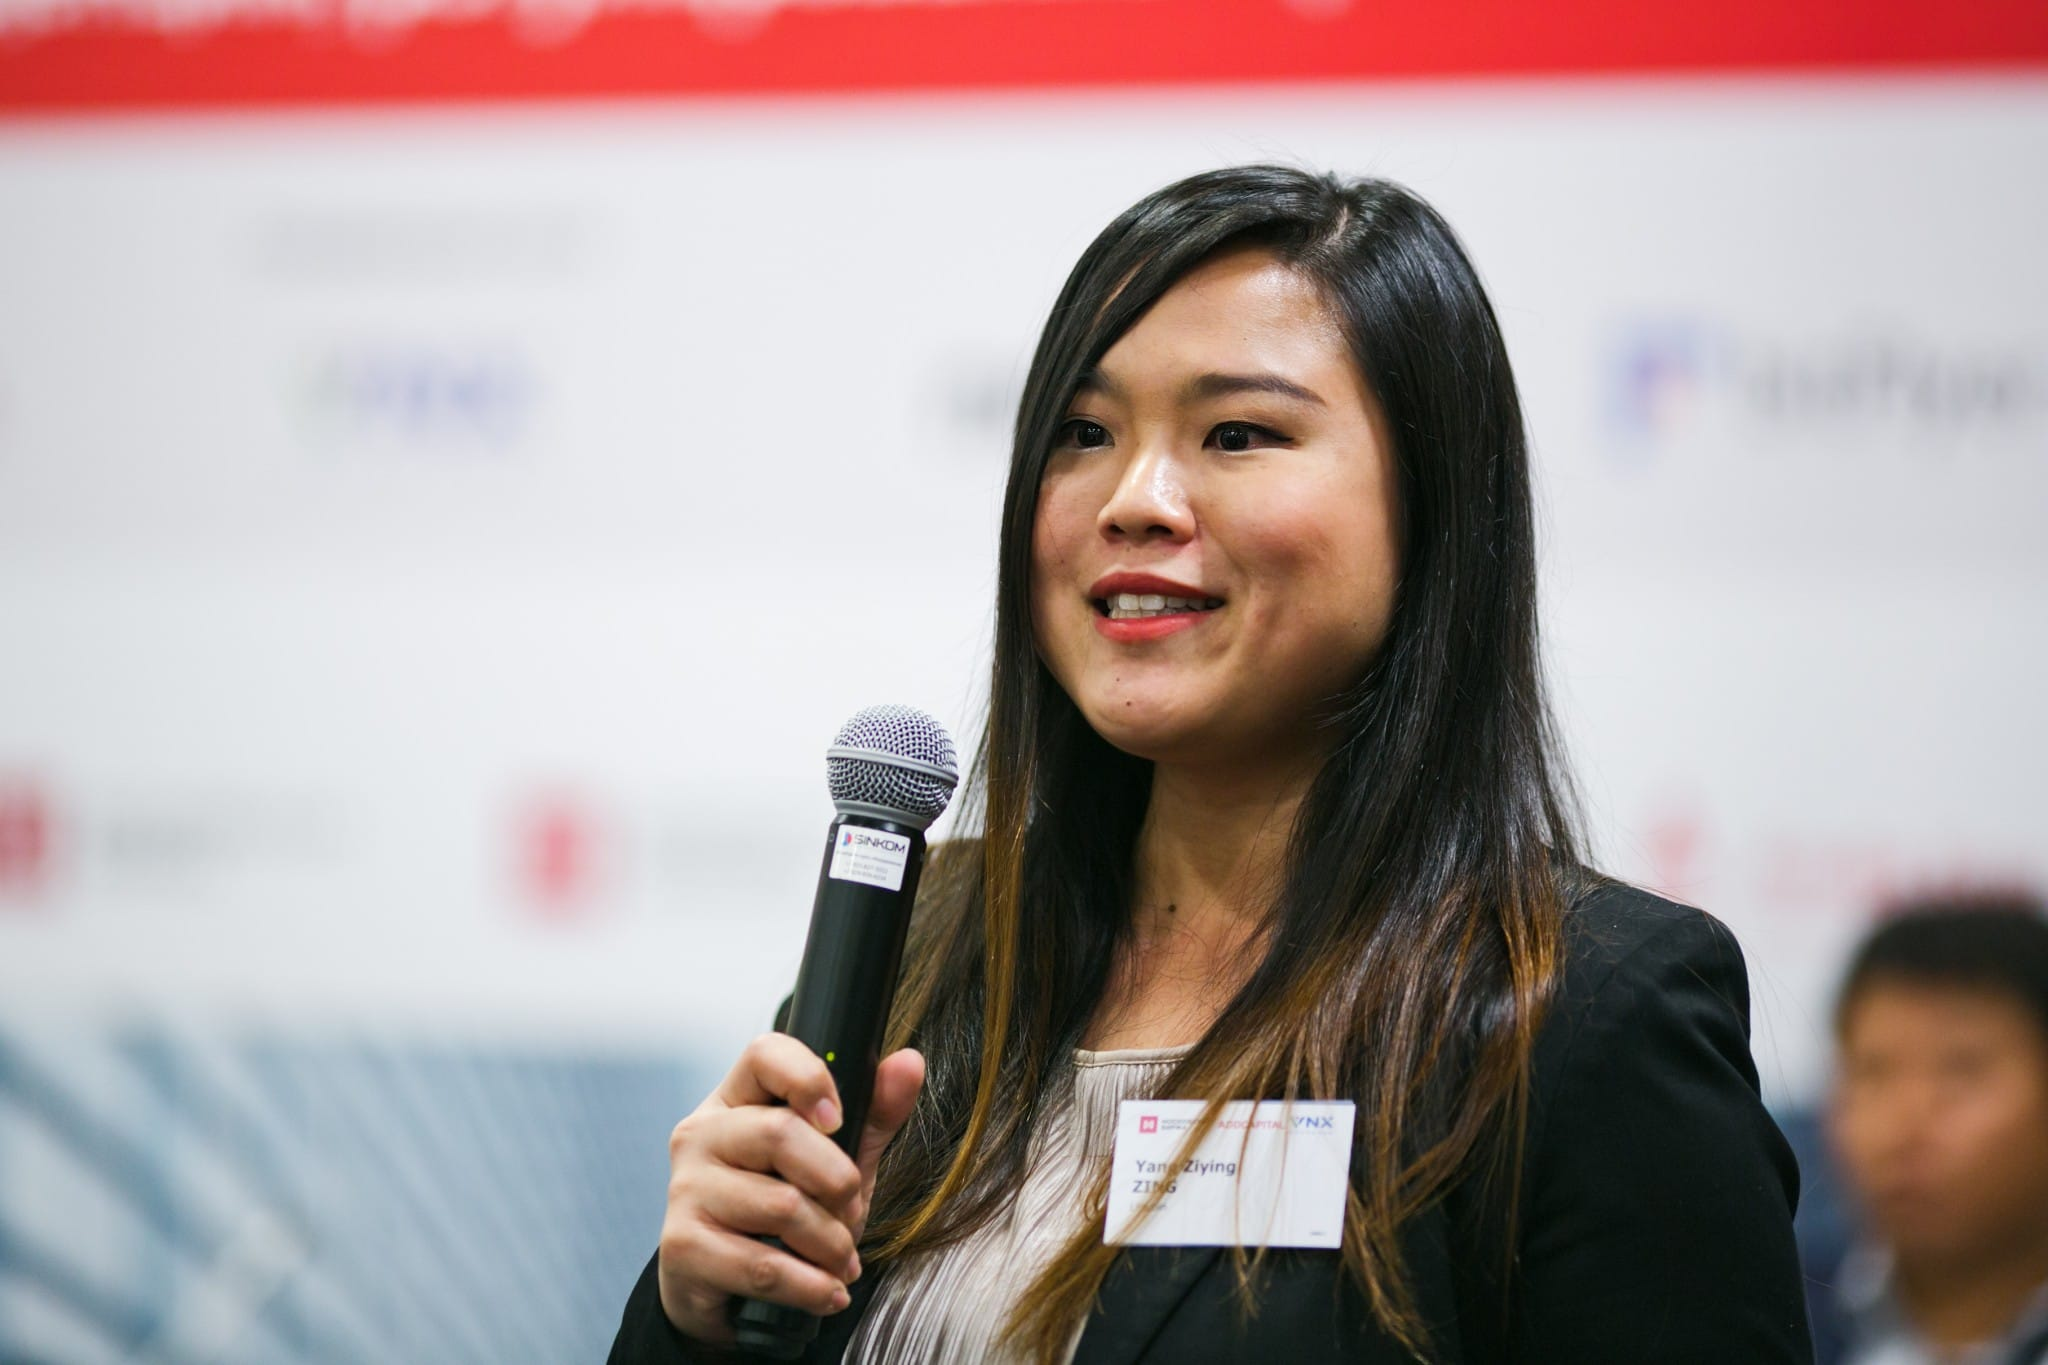 Zing Yang appointed as New Senior Vice President for VNX Exchange Asia